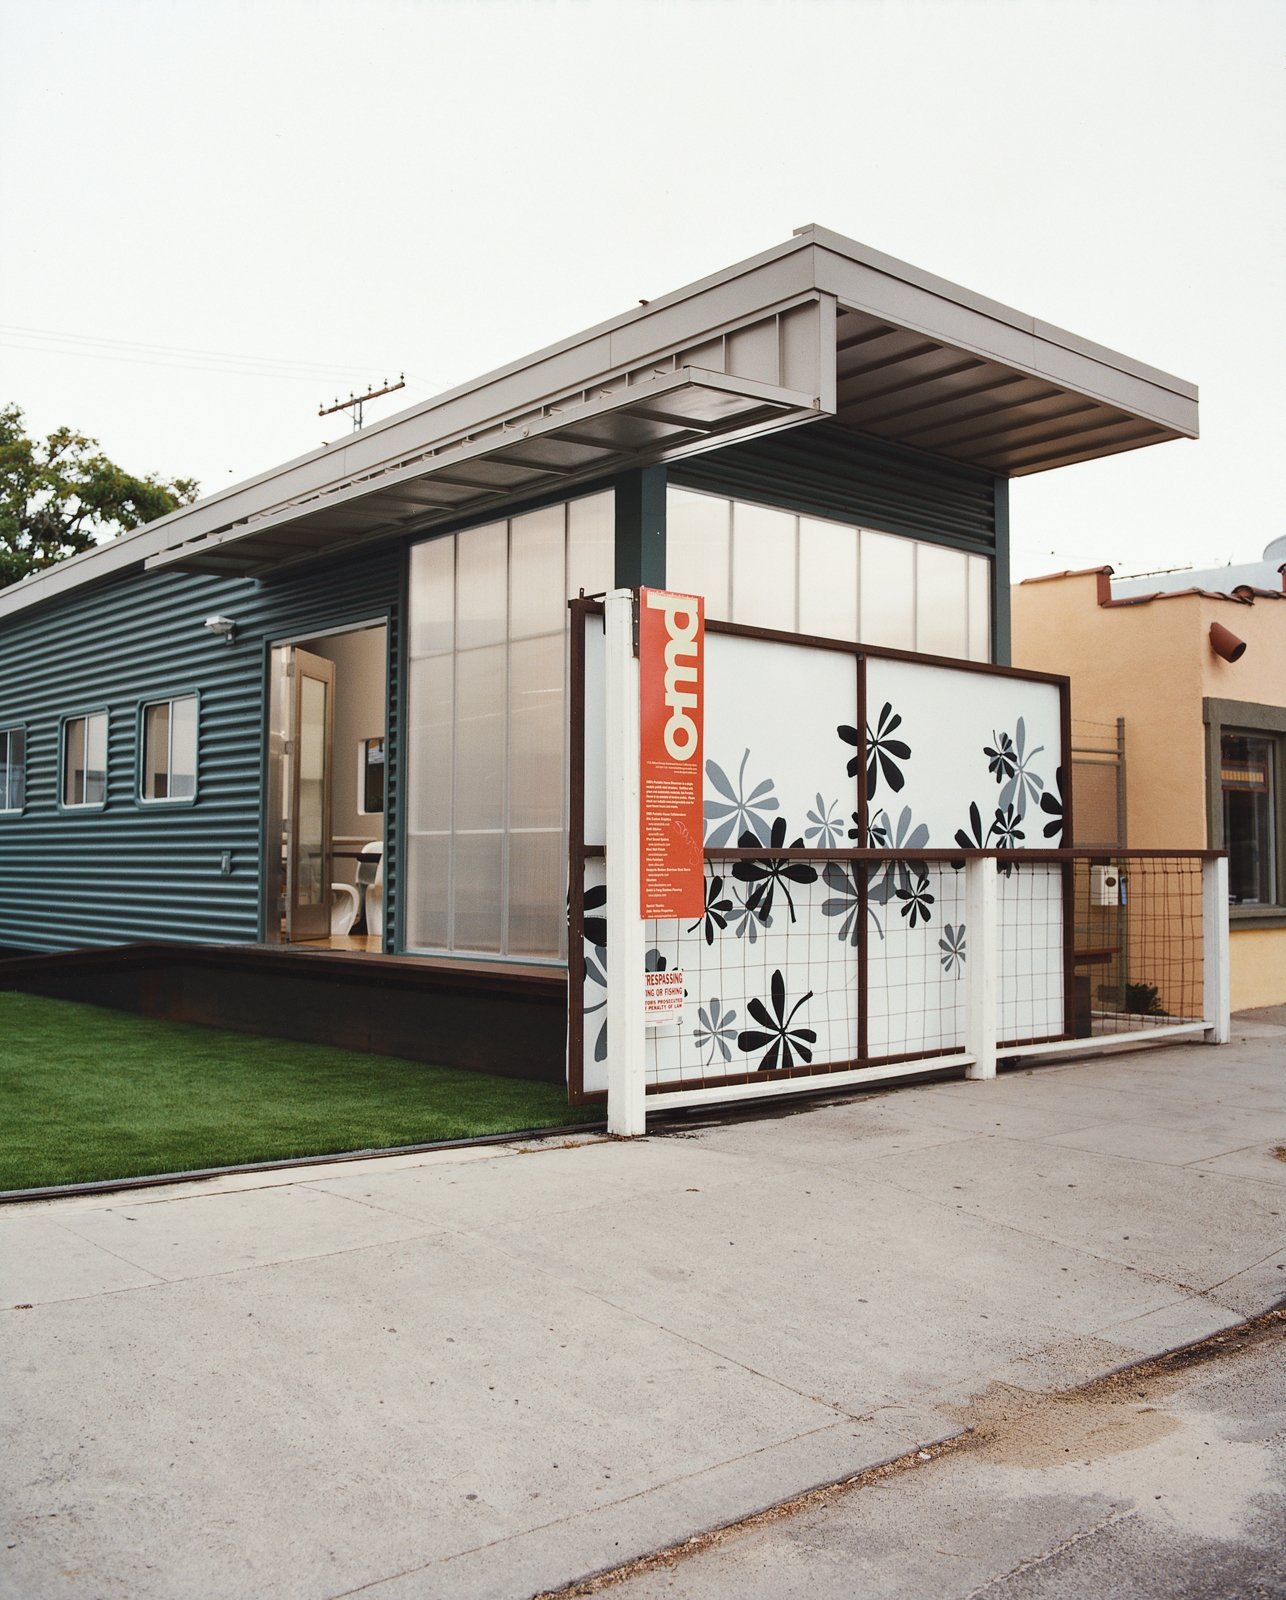 """Outdoor and Living Space Room Type Jennifer Siegal's other house is the portable ShowHouse, a 720-square-foot example of her factory-built prefab housing, wedged in among the boutiques and coffee bars on trendy Abbott Kinney Boulevard in Venice. """"I set it up so people would have a place to come and kick the tires,"""" Siegal jokes. """"What does modern prefab feel like?""""  Photo 10 of 14 in Method Lab"""